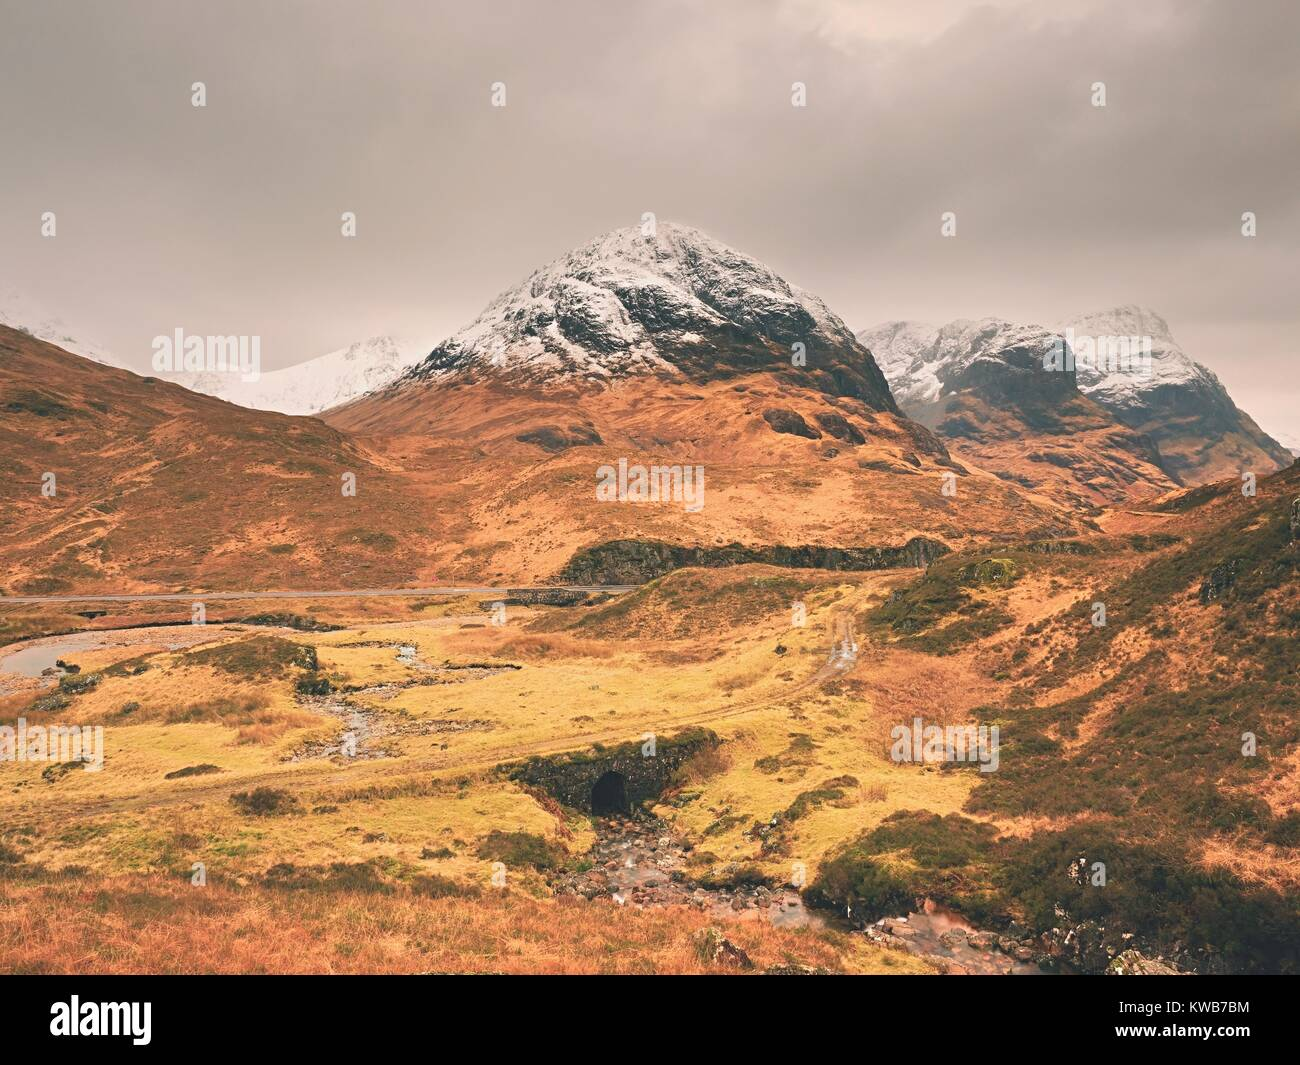 The rough mountain stream in the mountains. Snowy cone of mountain in clouds. Dry grass and heather bushes on banks - Stock Image